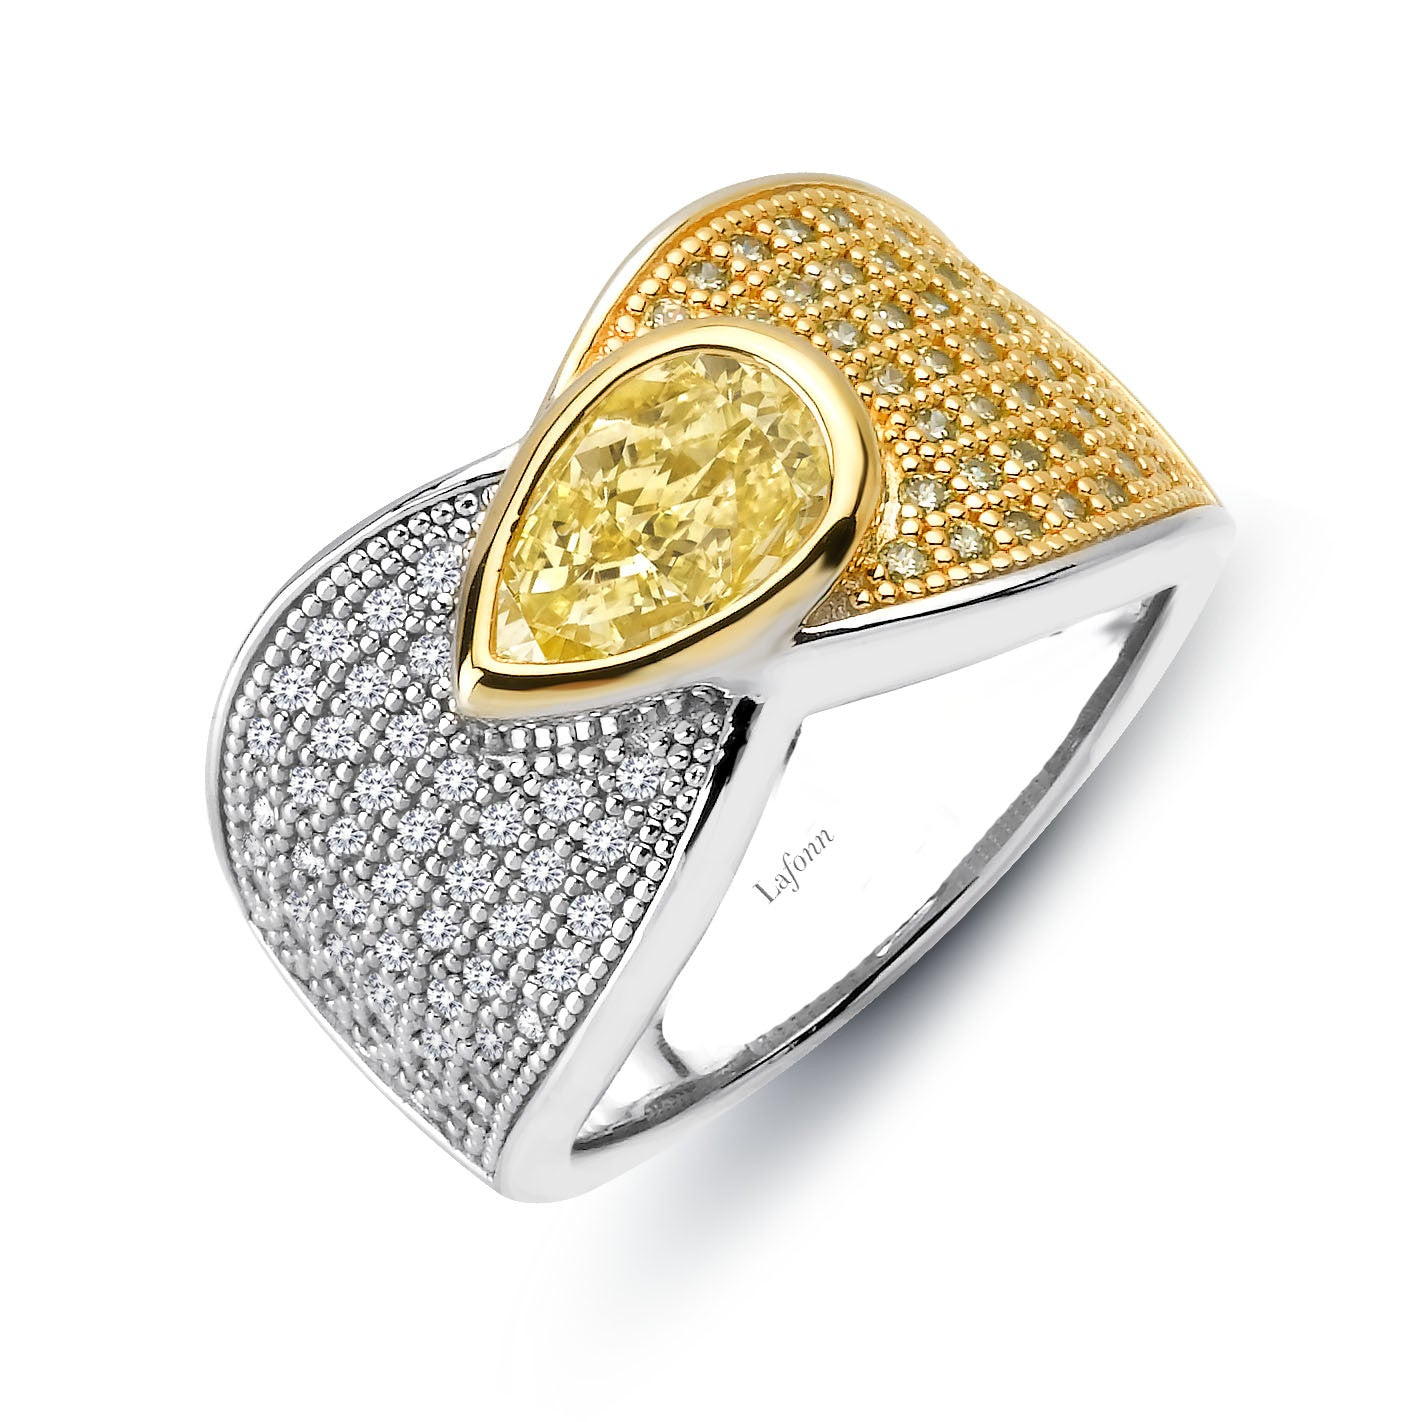 Sterling Silver and Platinum Canary Ring by Lafonn